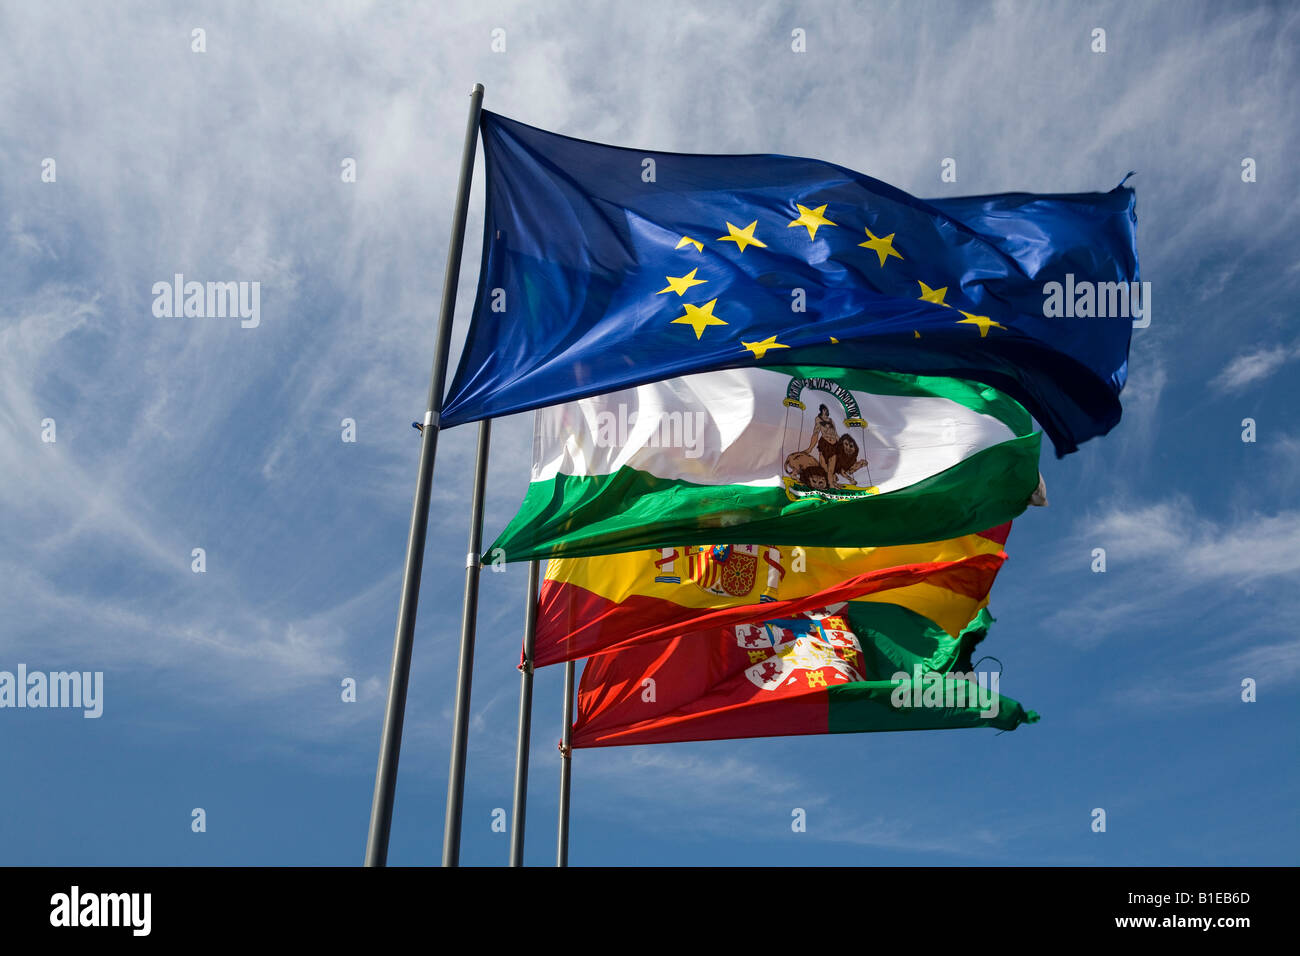 the flags of the european union andalusia spain and granada